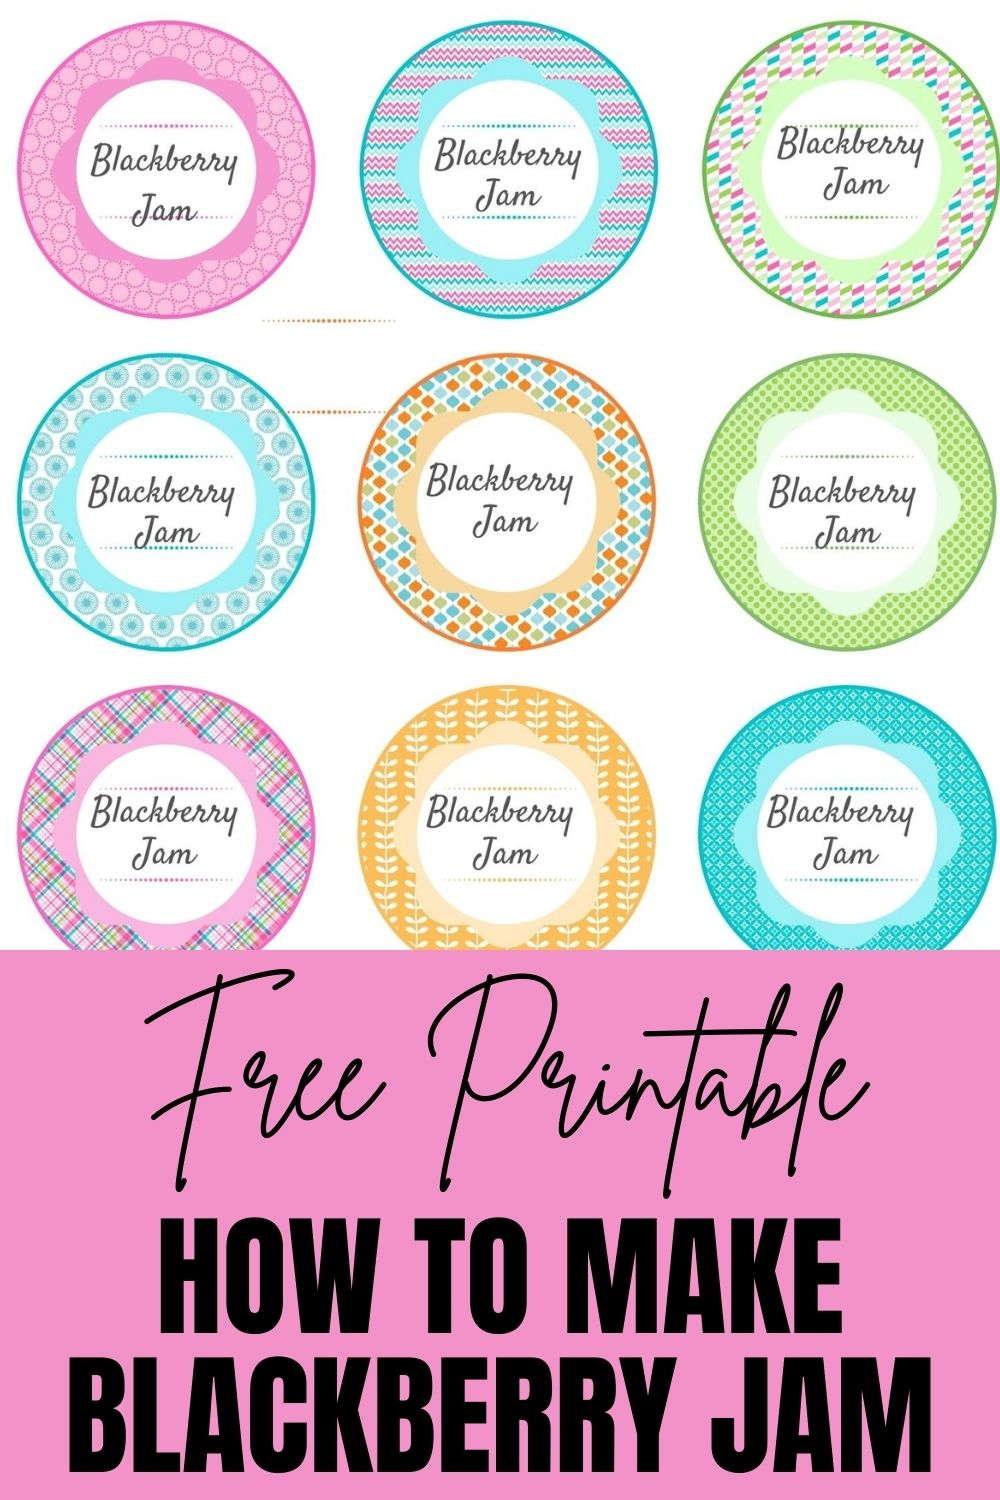 Free Printable How to Make Blackberry Jam + Labels